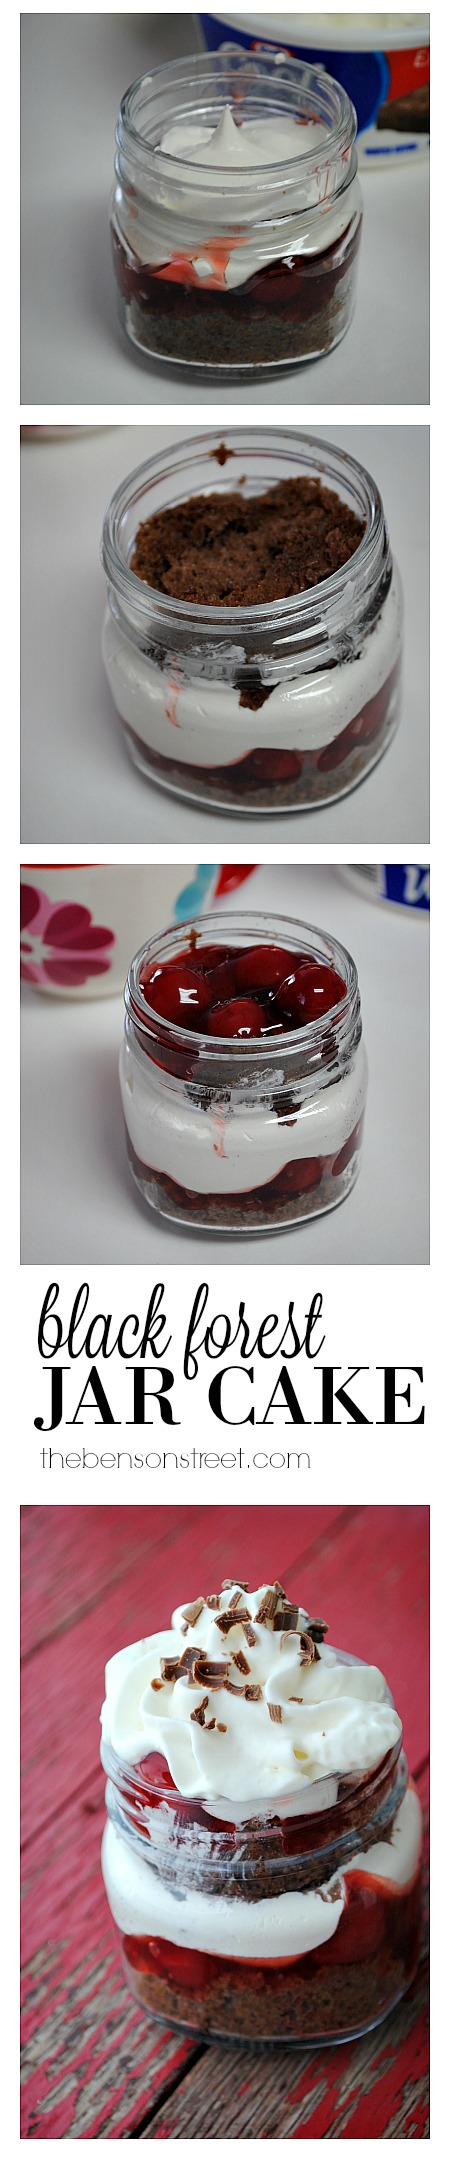 How to make a Black Forest Jar Cake at thebensonstreet.com